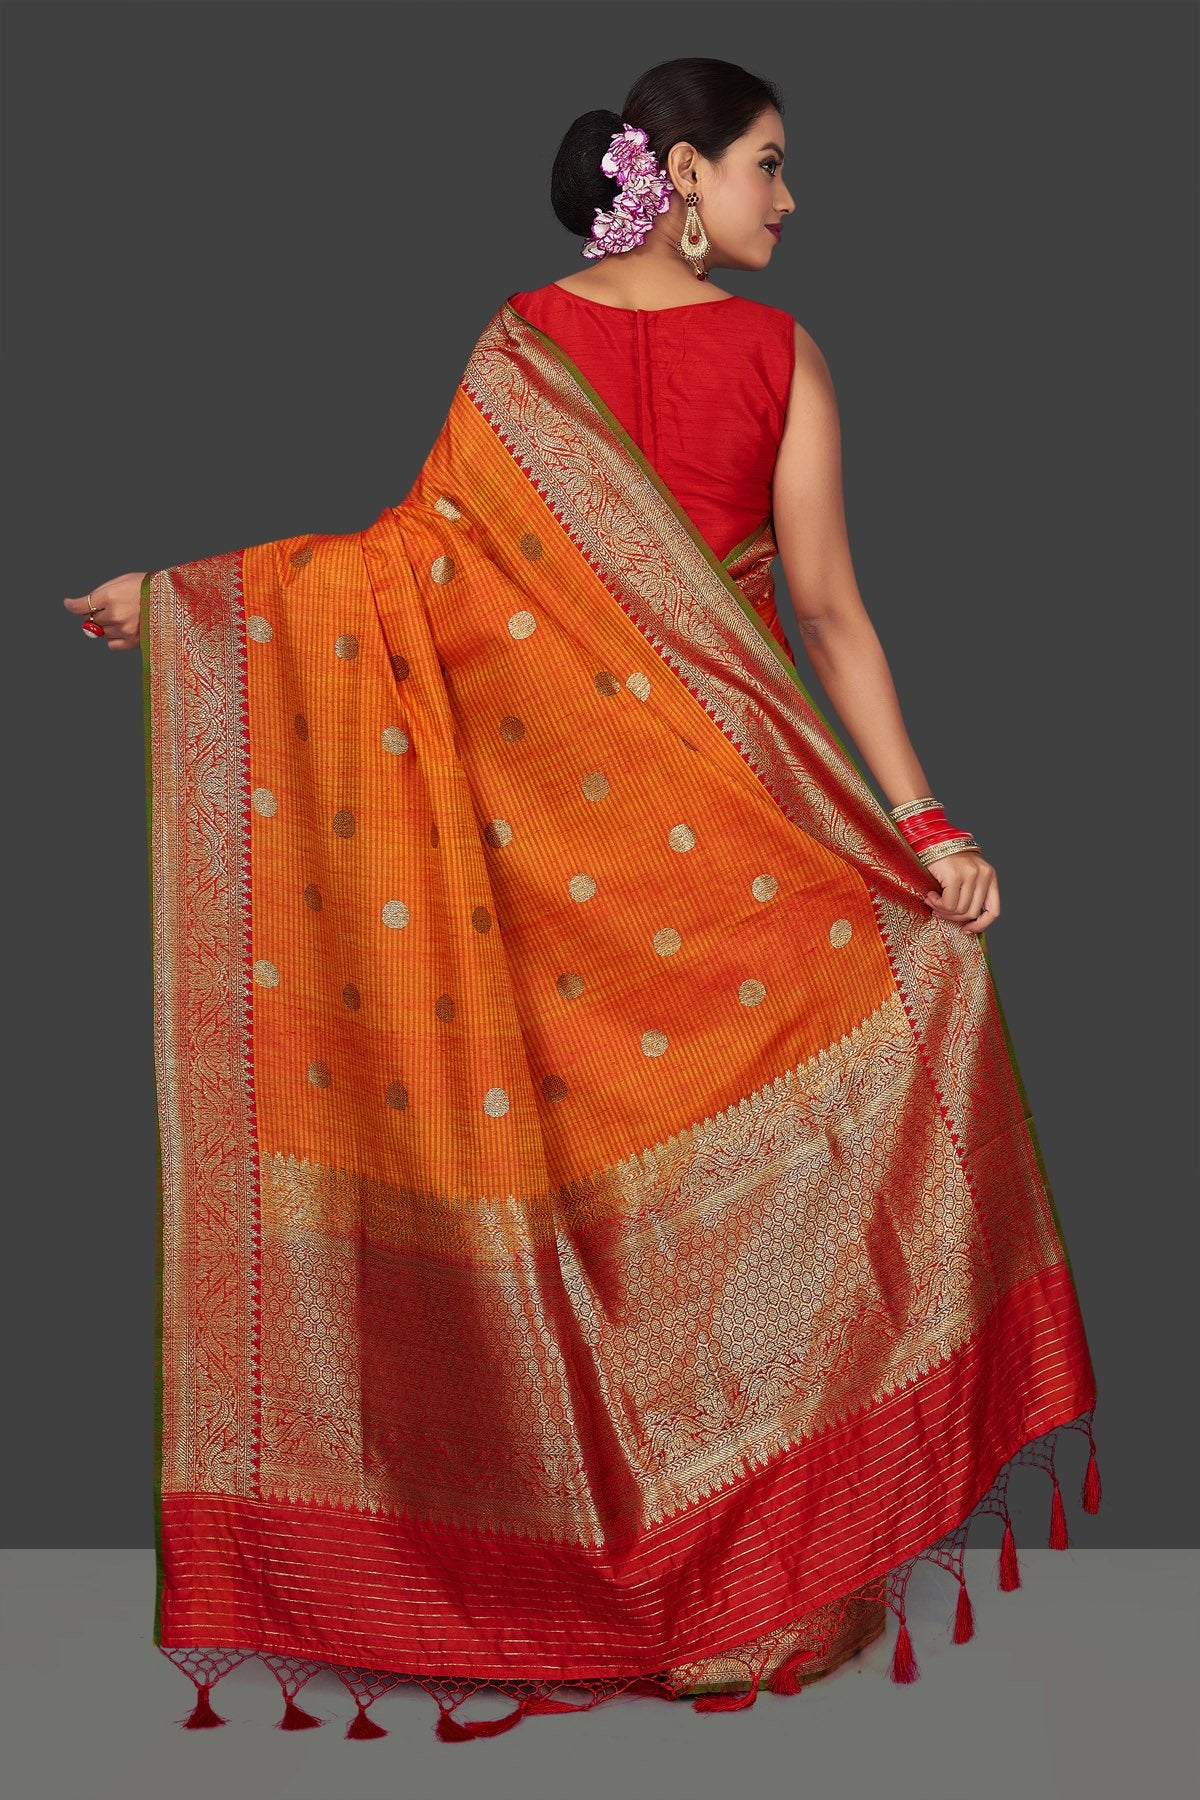 Shop beautiful orange tassar Banarasi saree online in USA with antique zari red border and zari buta. Garner compliments on weddings and special occasions with exquisite Banarasi saris, handwoven silk sarees, tussar sarees from Pure Elegance Indian fashion store in USA.-back